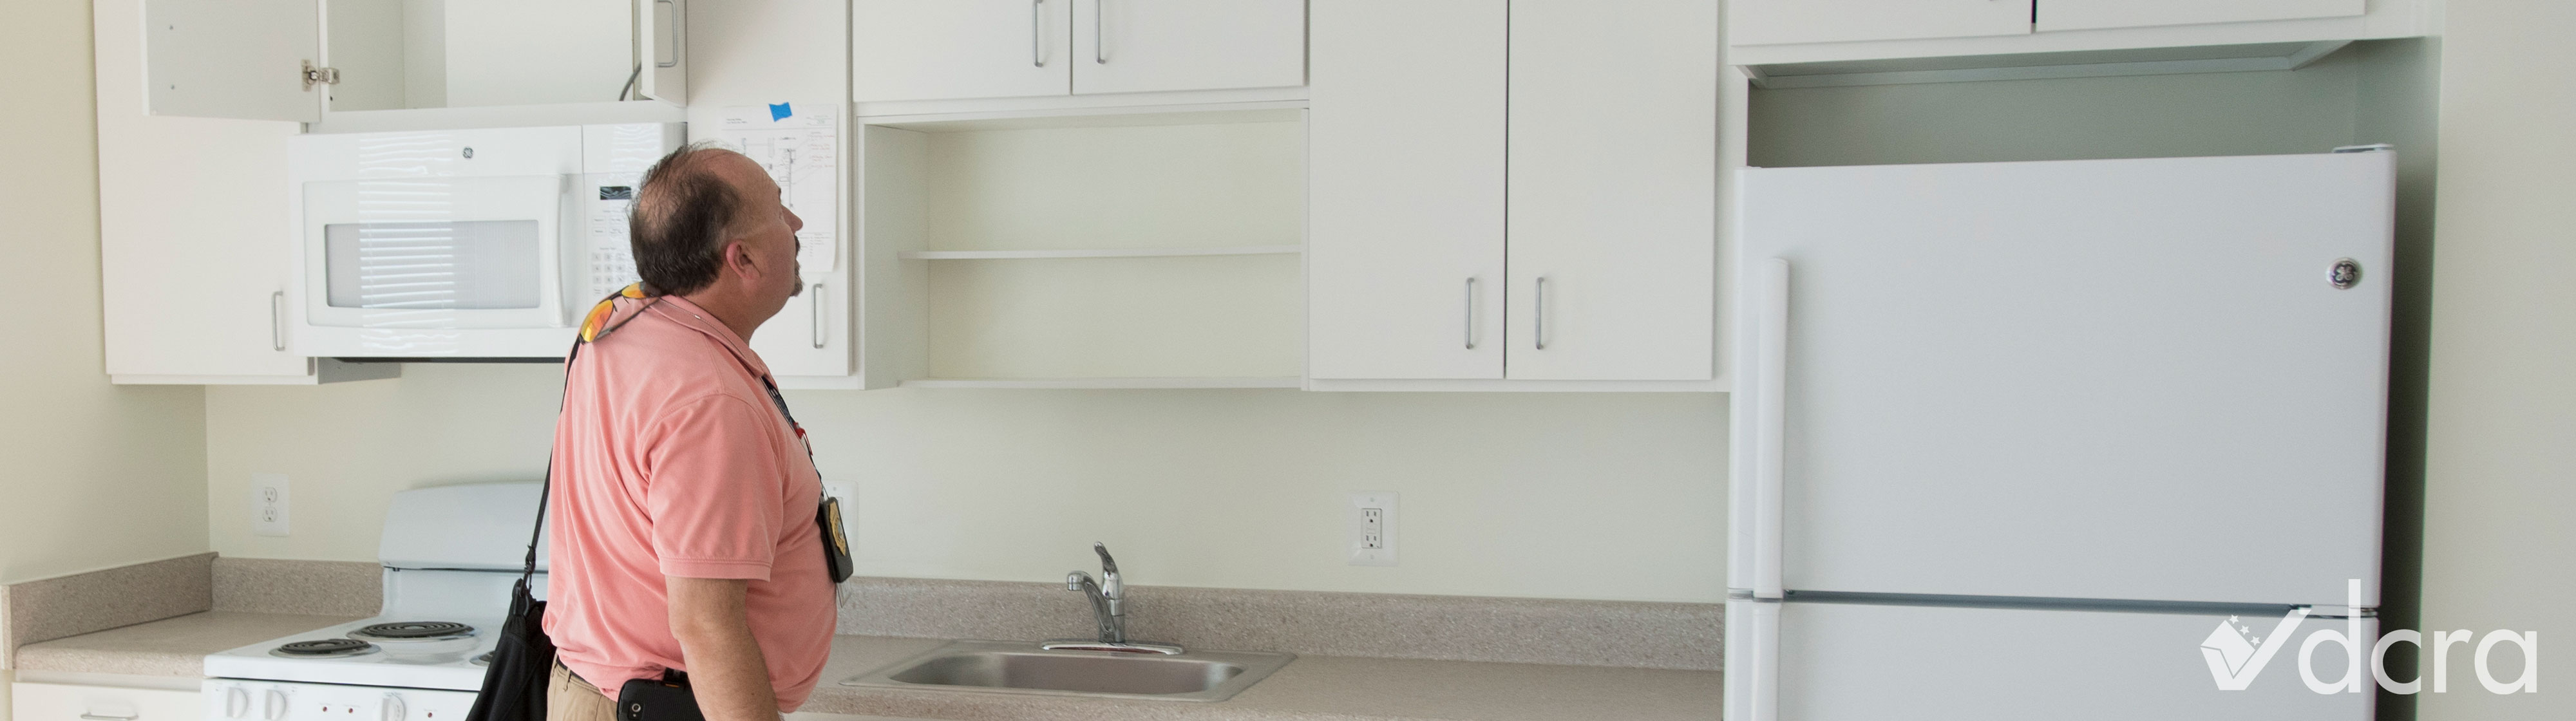 Inspector looking at a kitchen